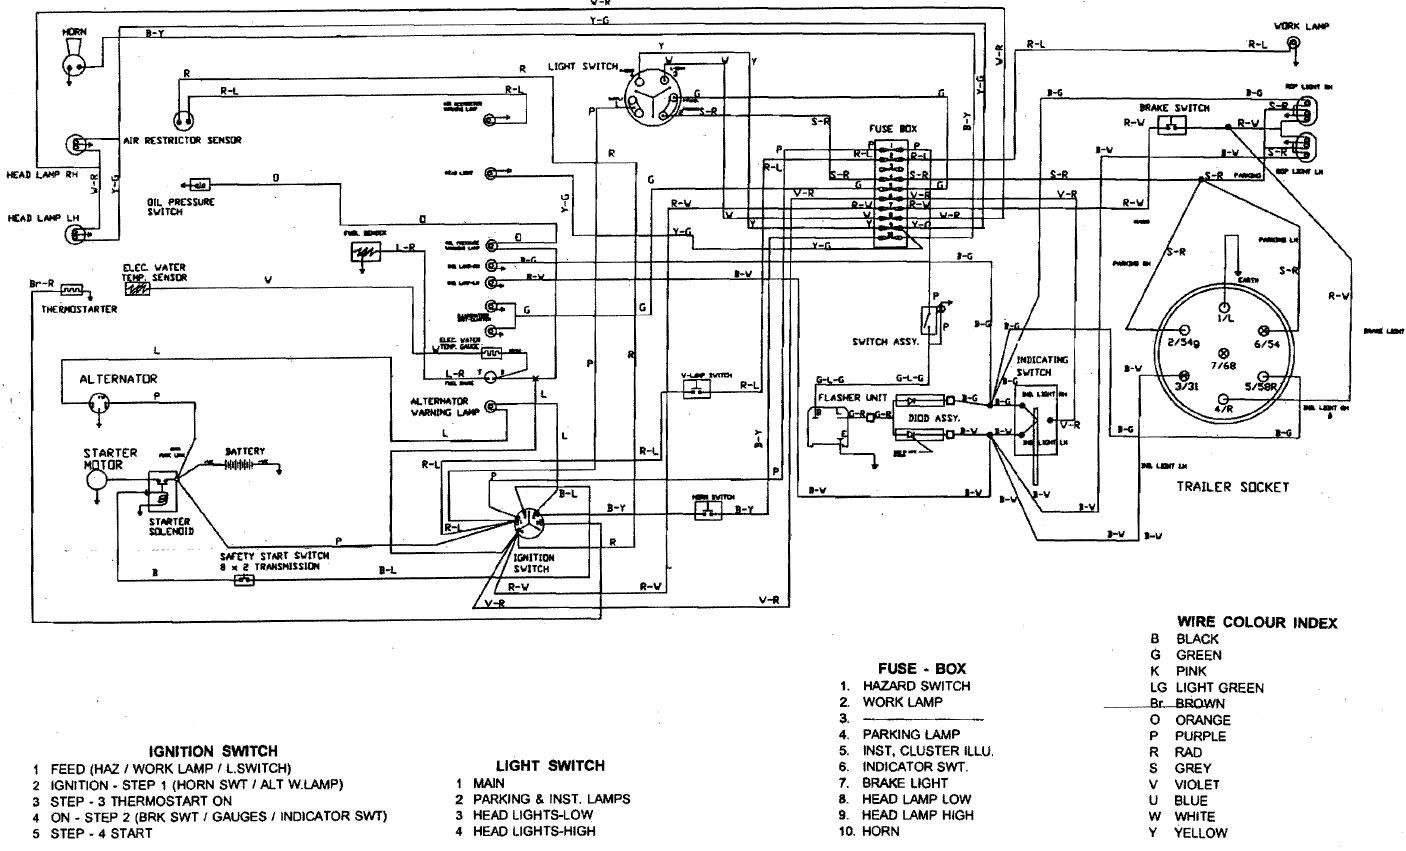 Starter Switch Wiring Diagram | Wiring Diagram Database on murray ignition switch diagram, saab 900 ignition wiring diagram, chopper wiring diagram, gm tachometer wiring diagram, simple auto wiring diagram, cdi ignition wiring diagram, ignition coil wiring diagram, garden tractor ignition switch diagram, club car ignition switch diagram, distributor wiring diagram, universal ignition switch installation, ford steering column wiring diagram, universal motorcycle ignition switch, 12 volt solenoid wiring diagram, 1990 f250 truck wiring diagram, ignition system wiring diagram, starter wiring diagram, 1-wire alternator wiring diagram, evinrude 28 spl ignition wiring diagram,